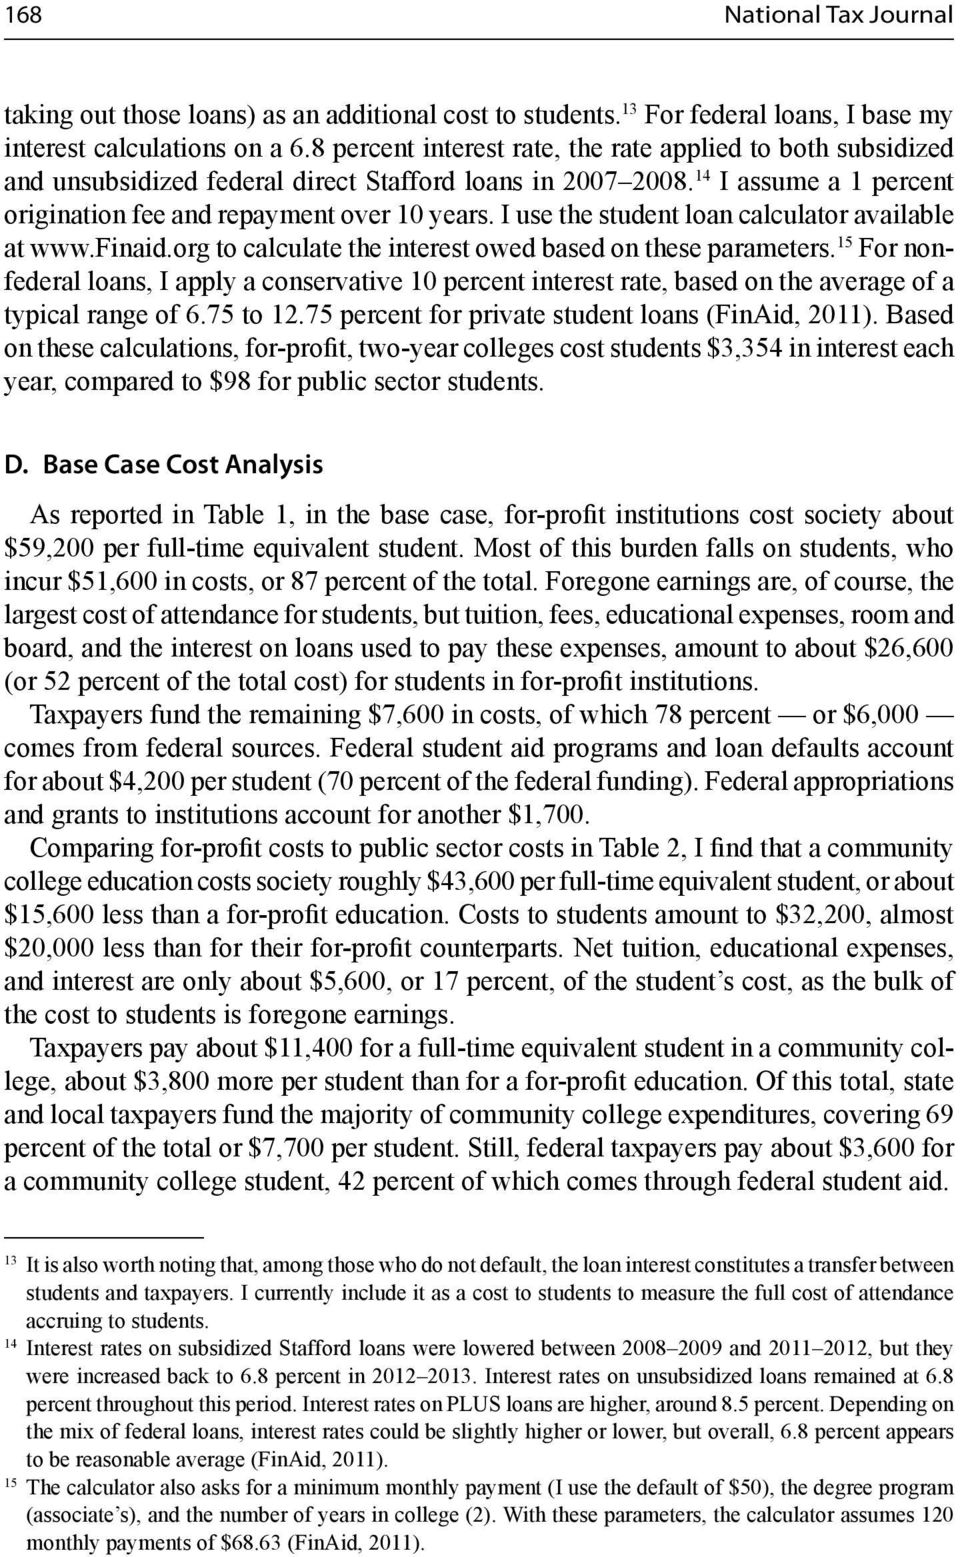 I use the student loan calculator available at www.finaid.org to calculate the interest owed based on these parameters.